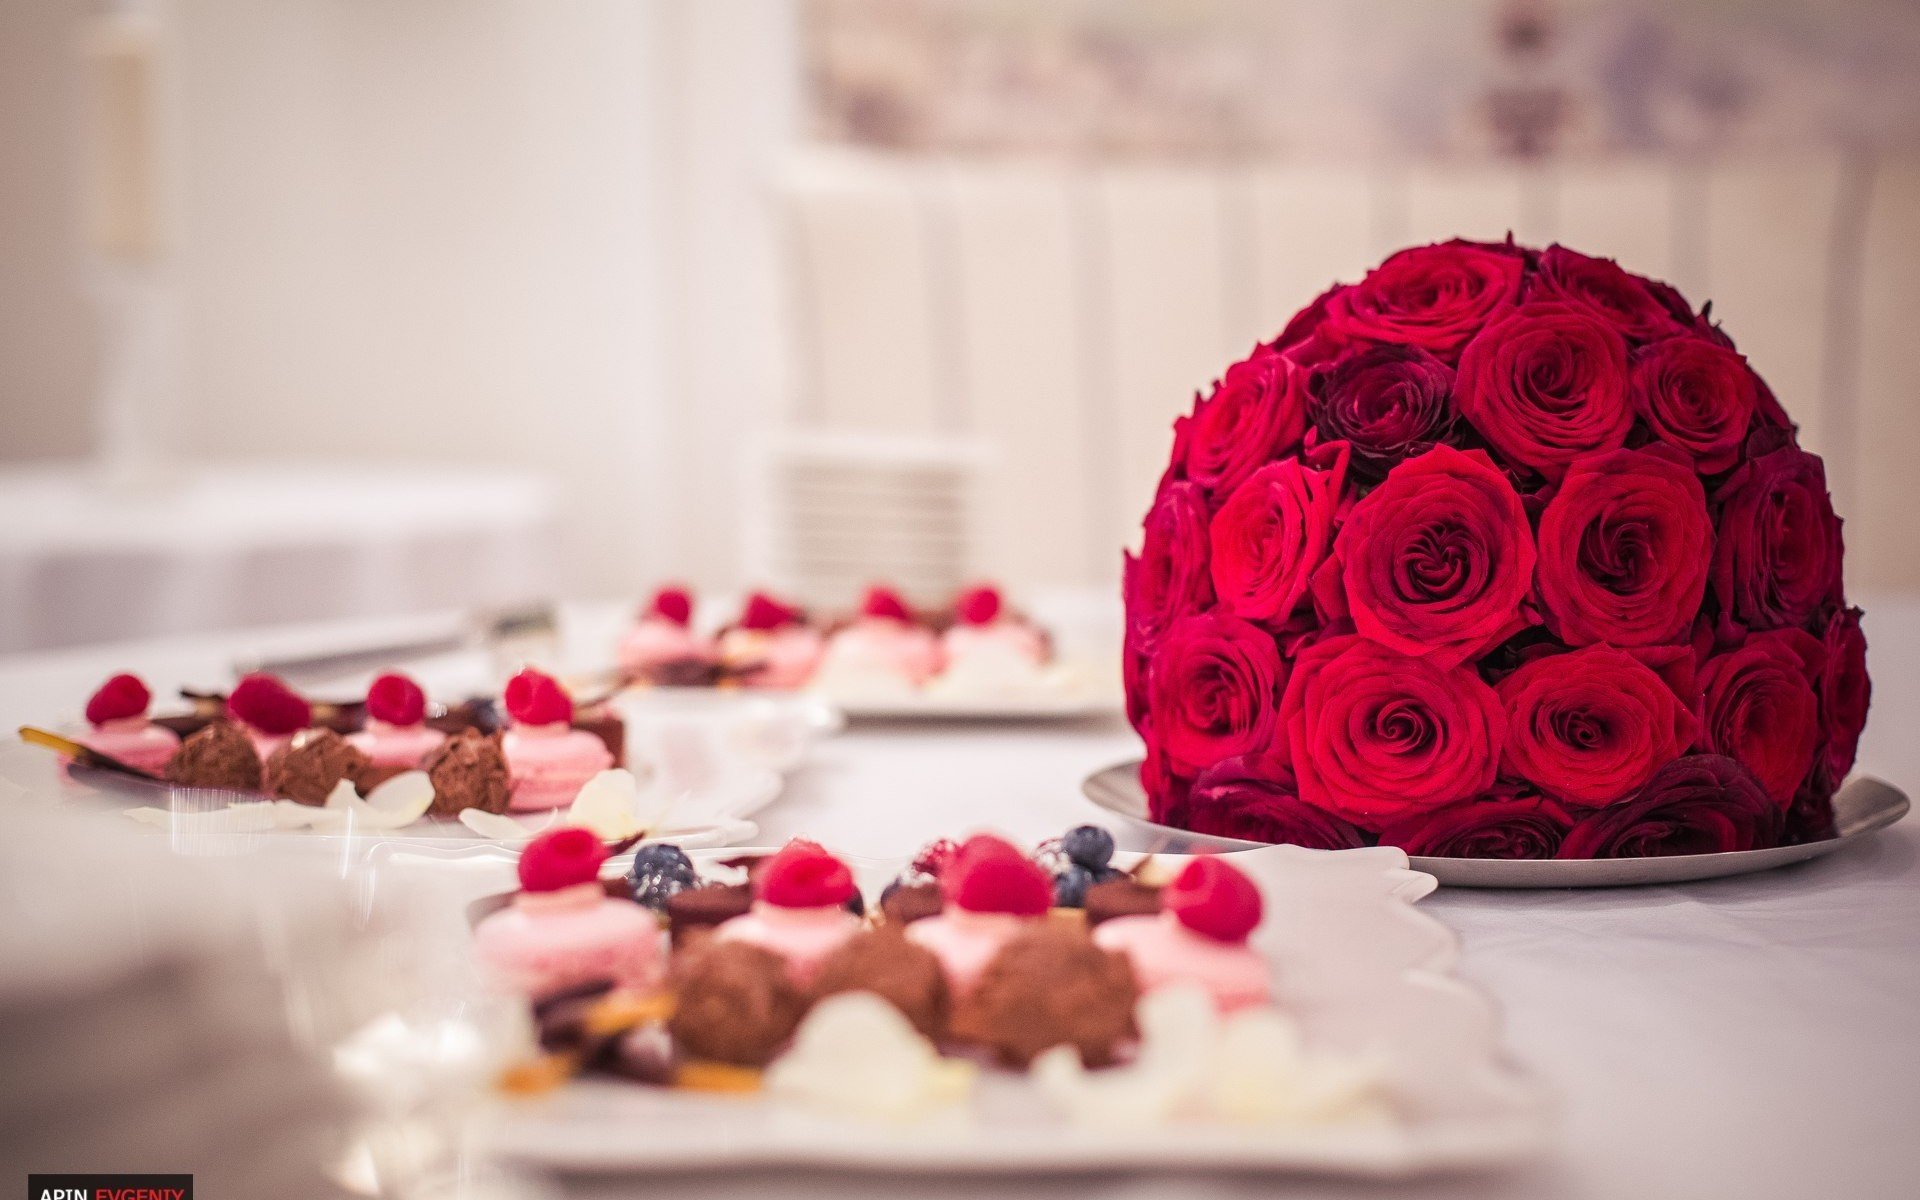 roses decoration food cakes sweet